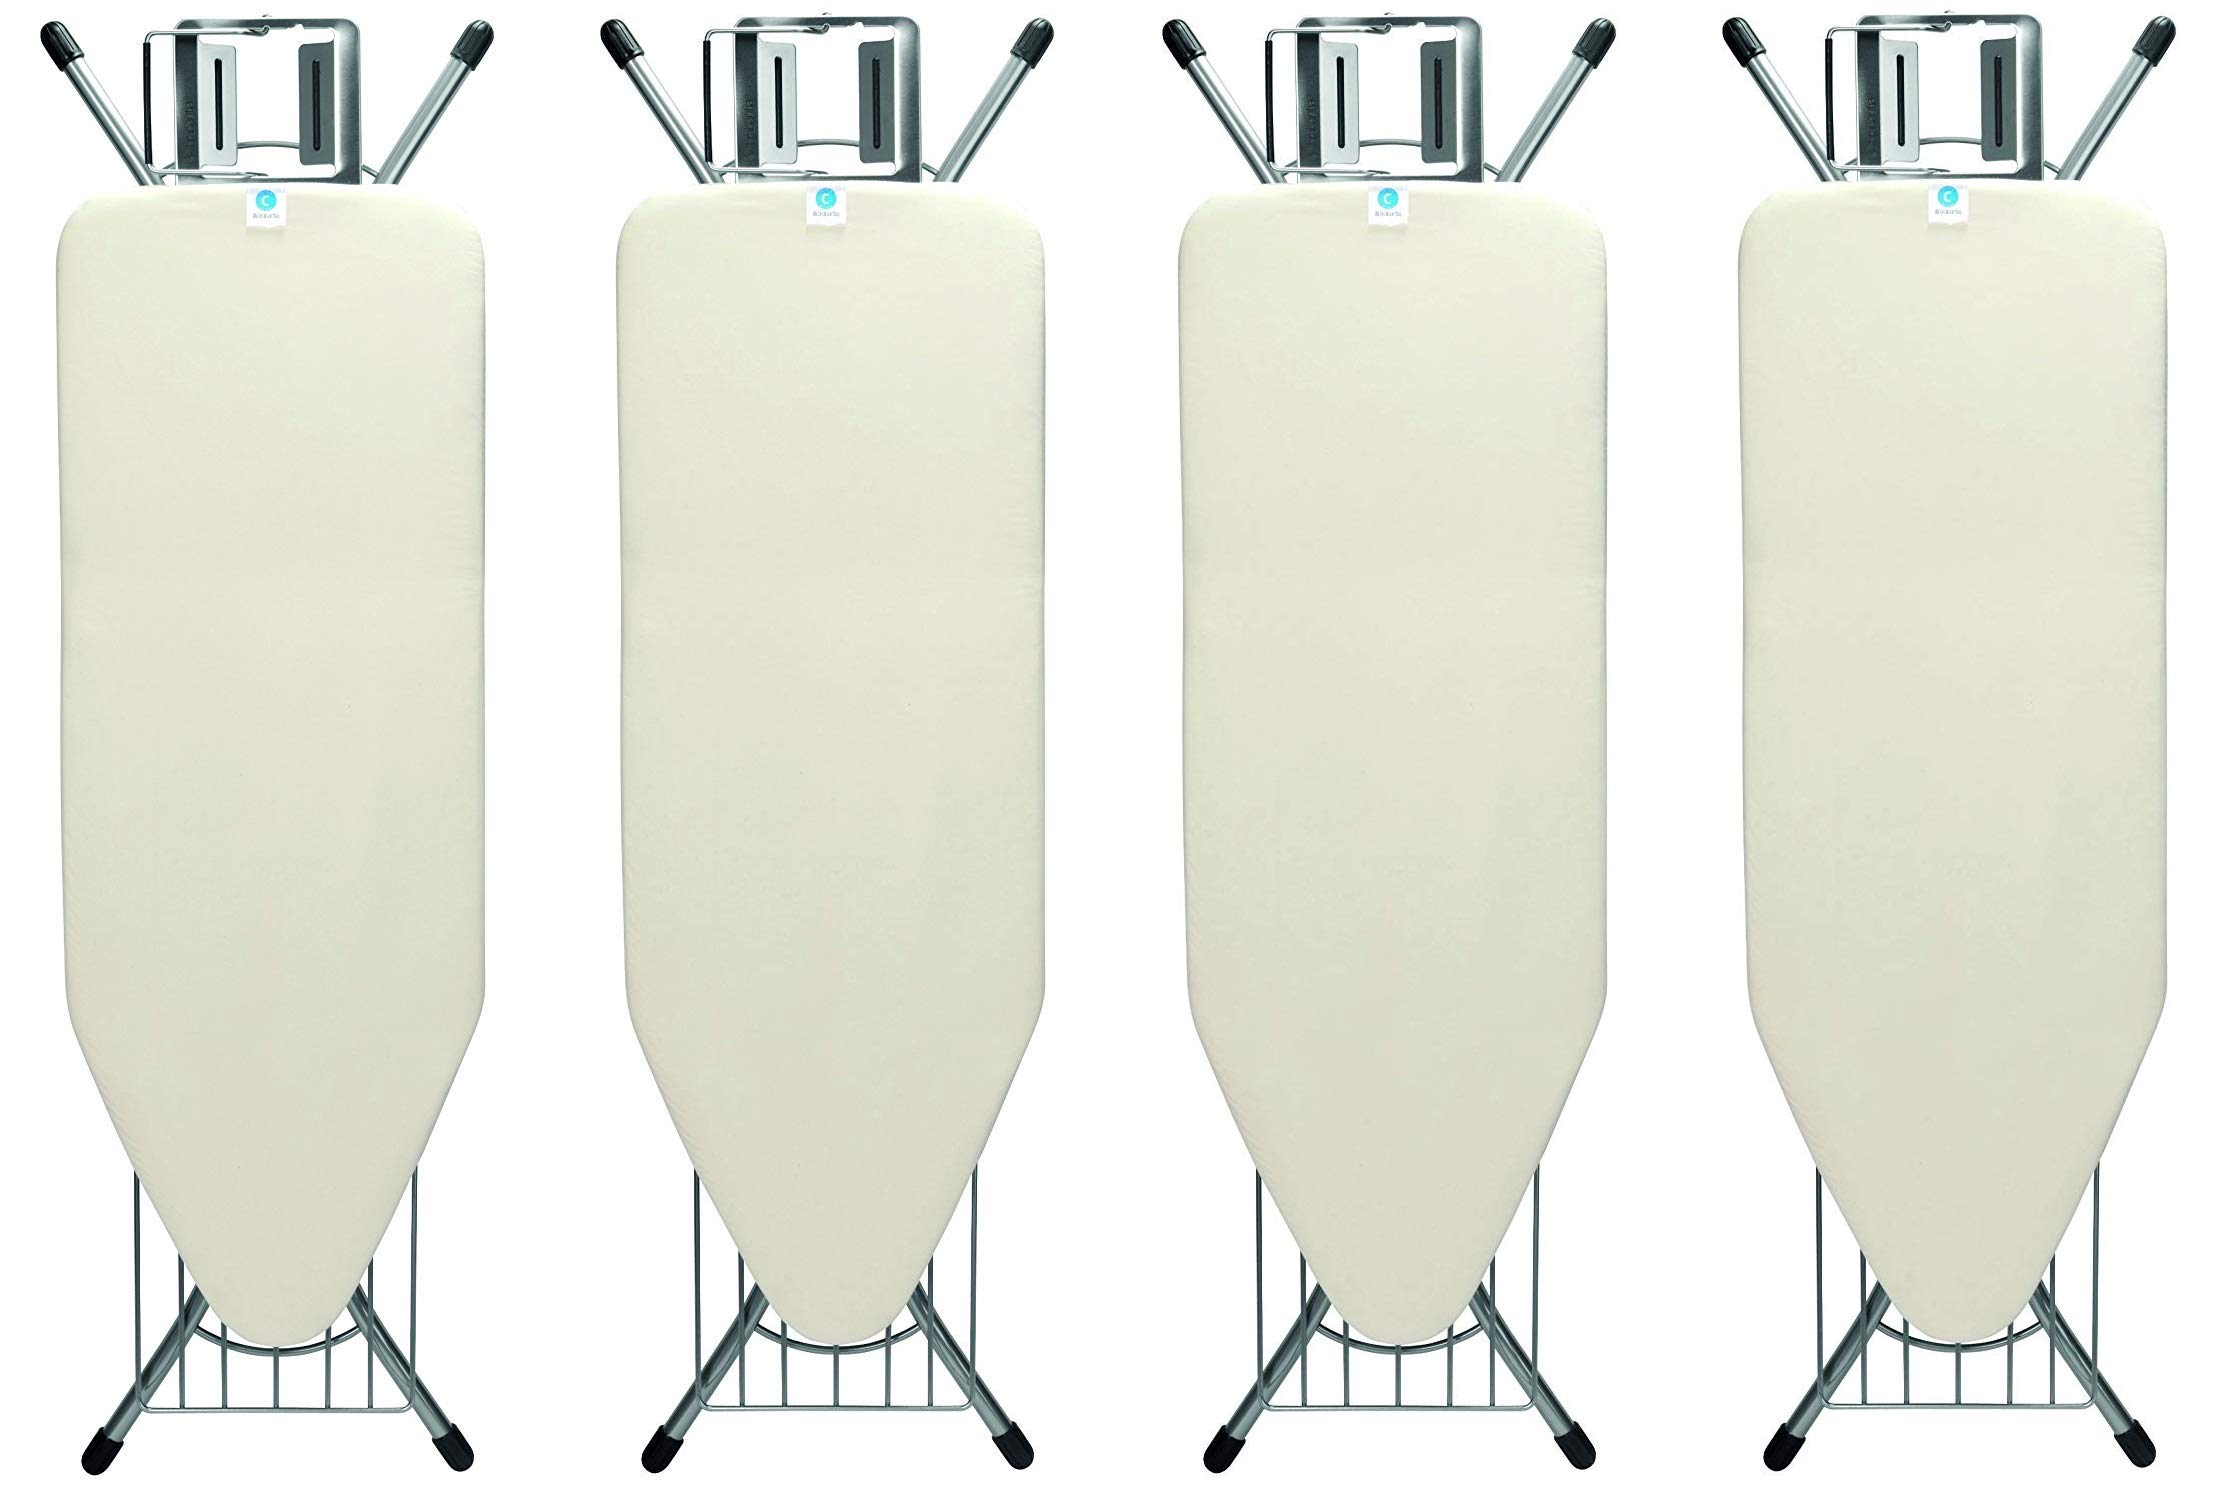 Brabantia Ironing Board with Steam Iron Rest and Linen Rack, Size C, Wide - Ecru Cover (Pack of 4)